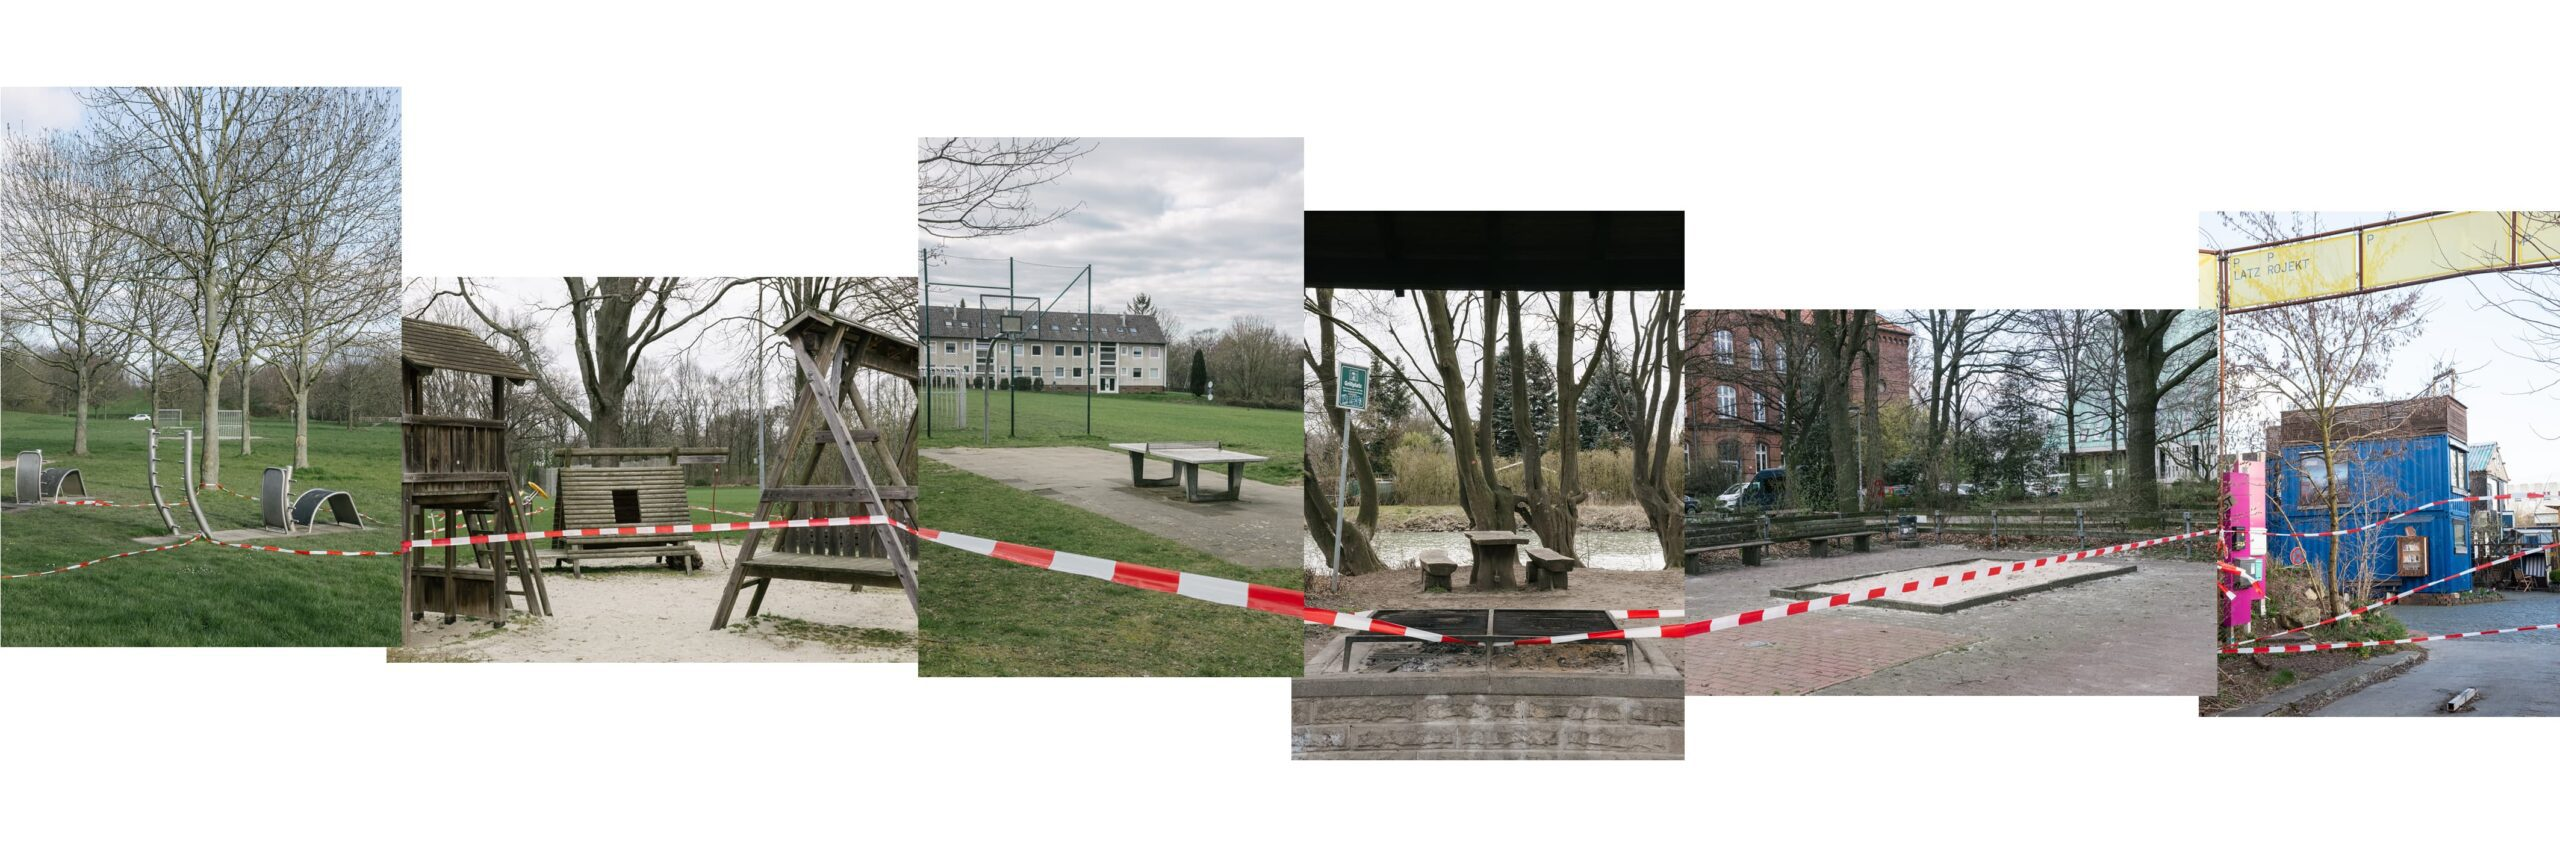 Sports- and playgrounds sealed of with red and white tape.